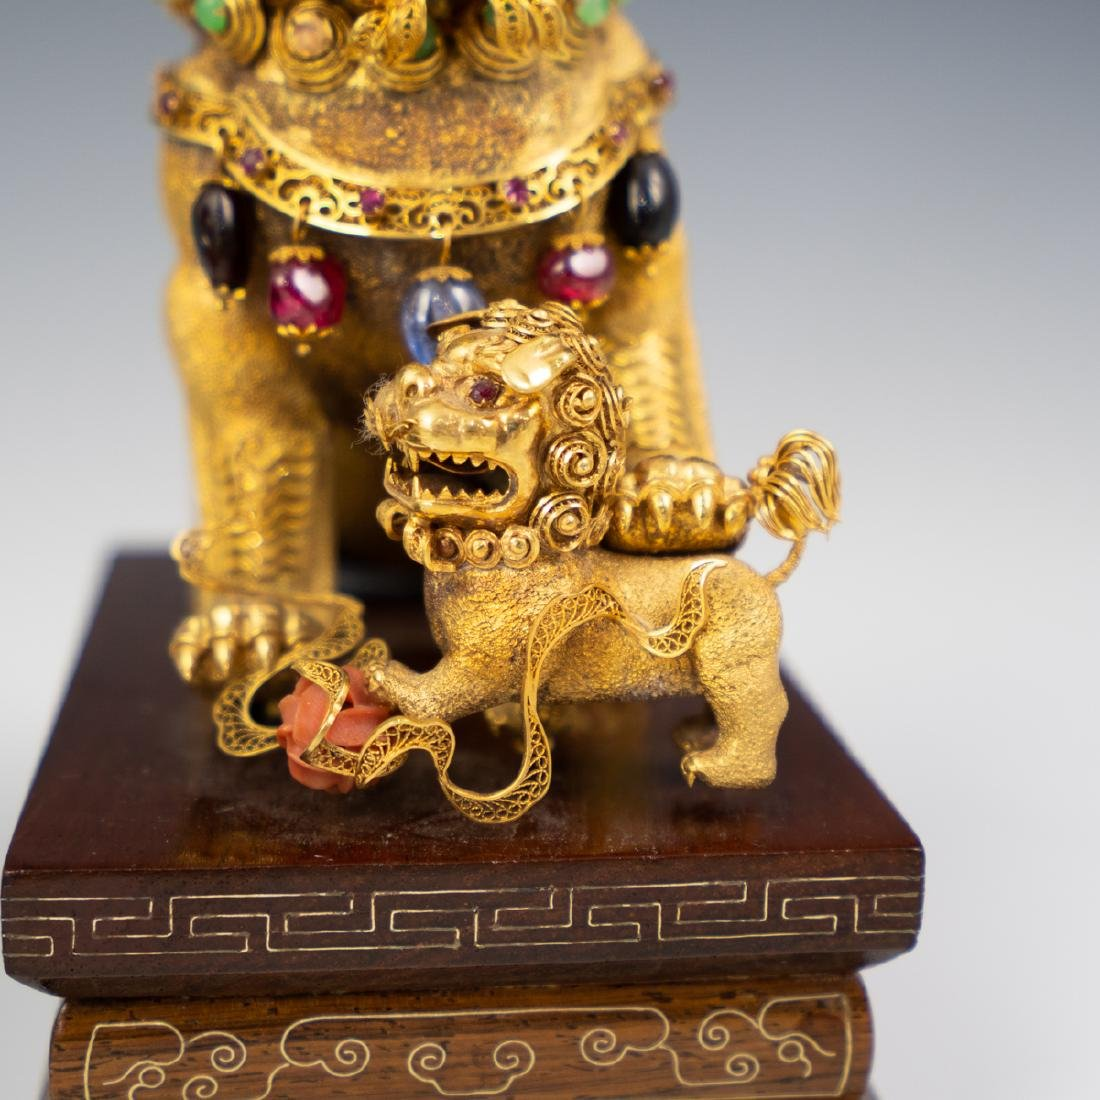 14K Solid Gold and Precious Stone Foo Dog - 4